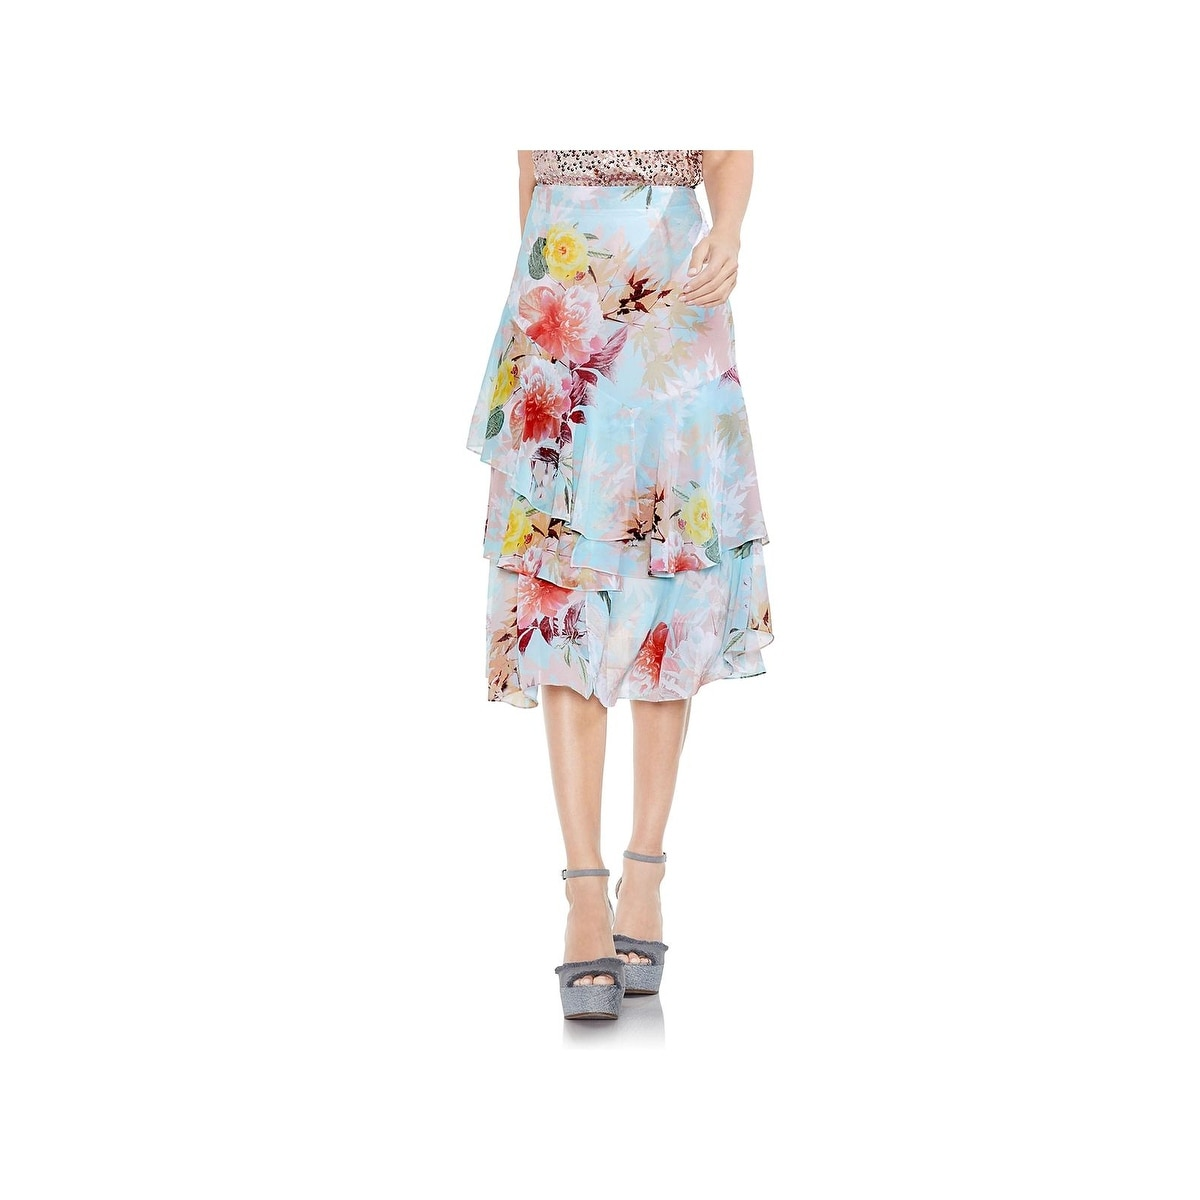 de2c64a1 Size 4 Skirts   Find Great Women's Clothing Deals Shopping at Overstock